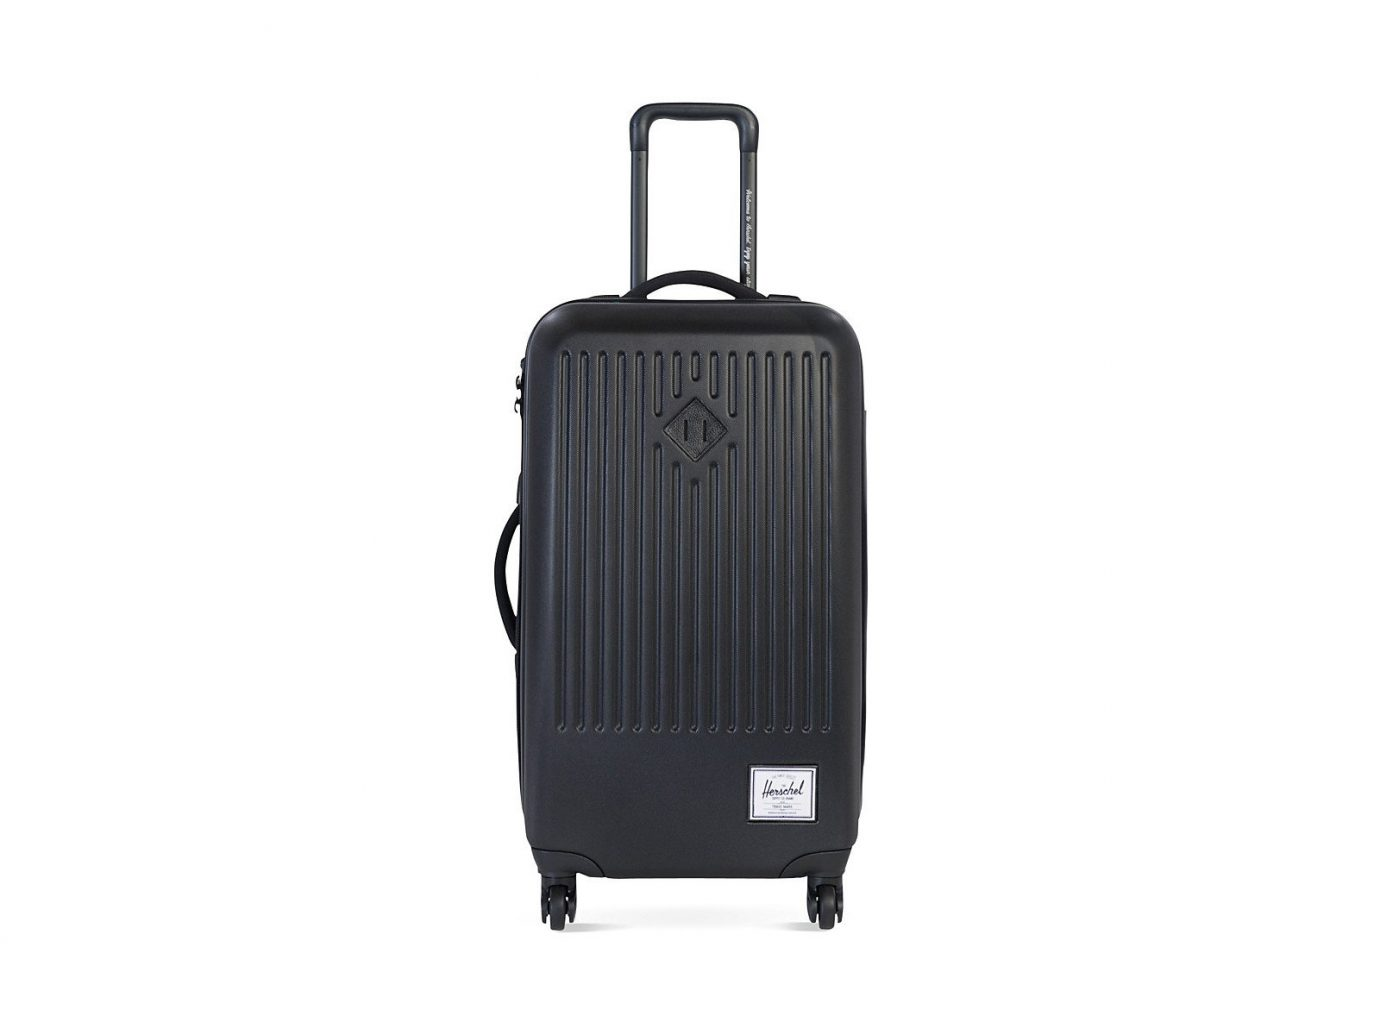 Gift Guides Style + Design Travel Shop luggage suitcase product hand luggage product design luggage & bags accessory bag